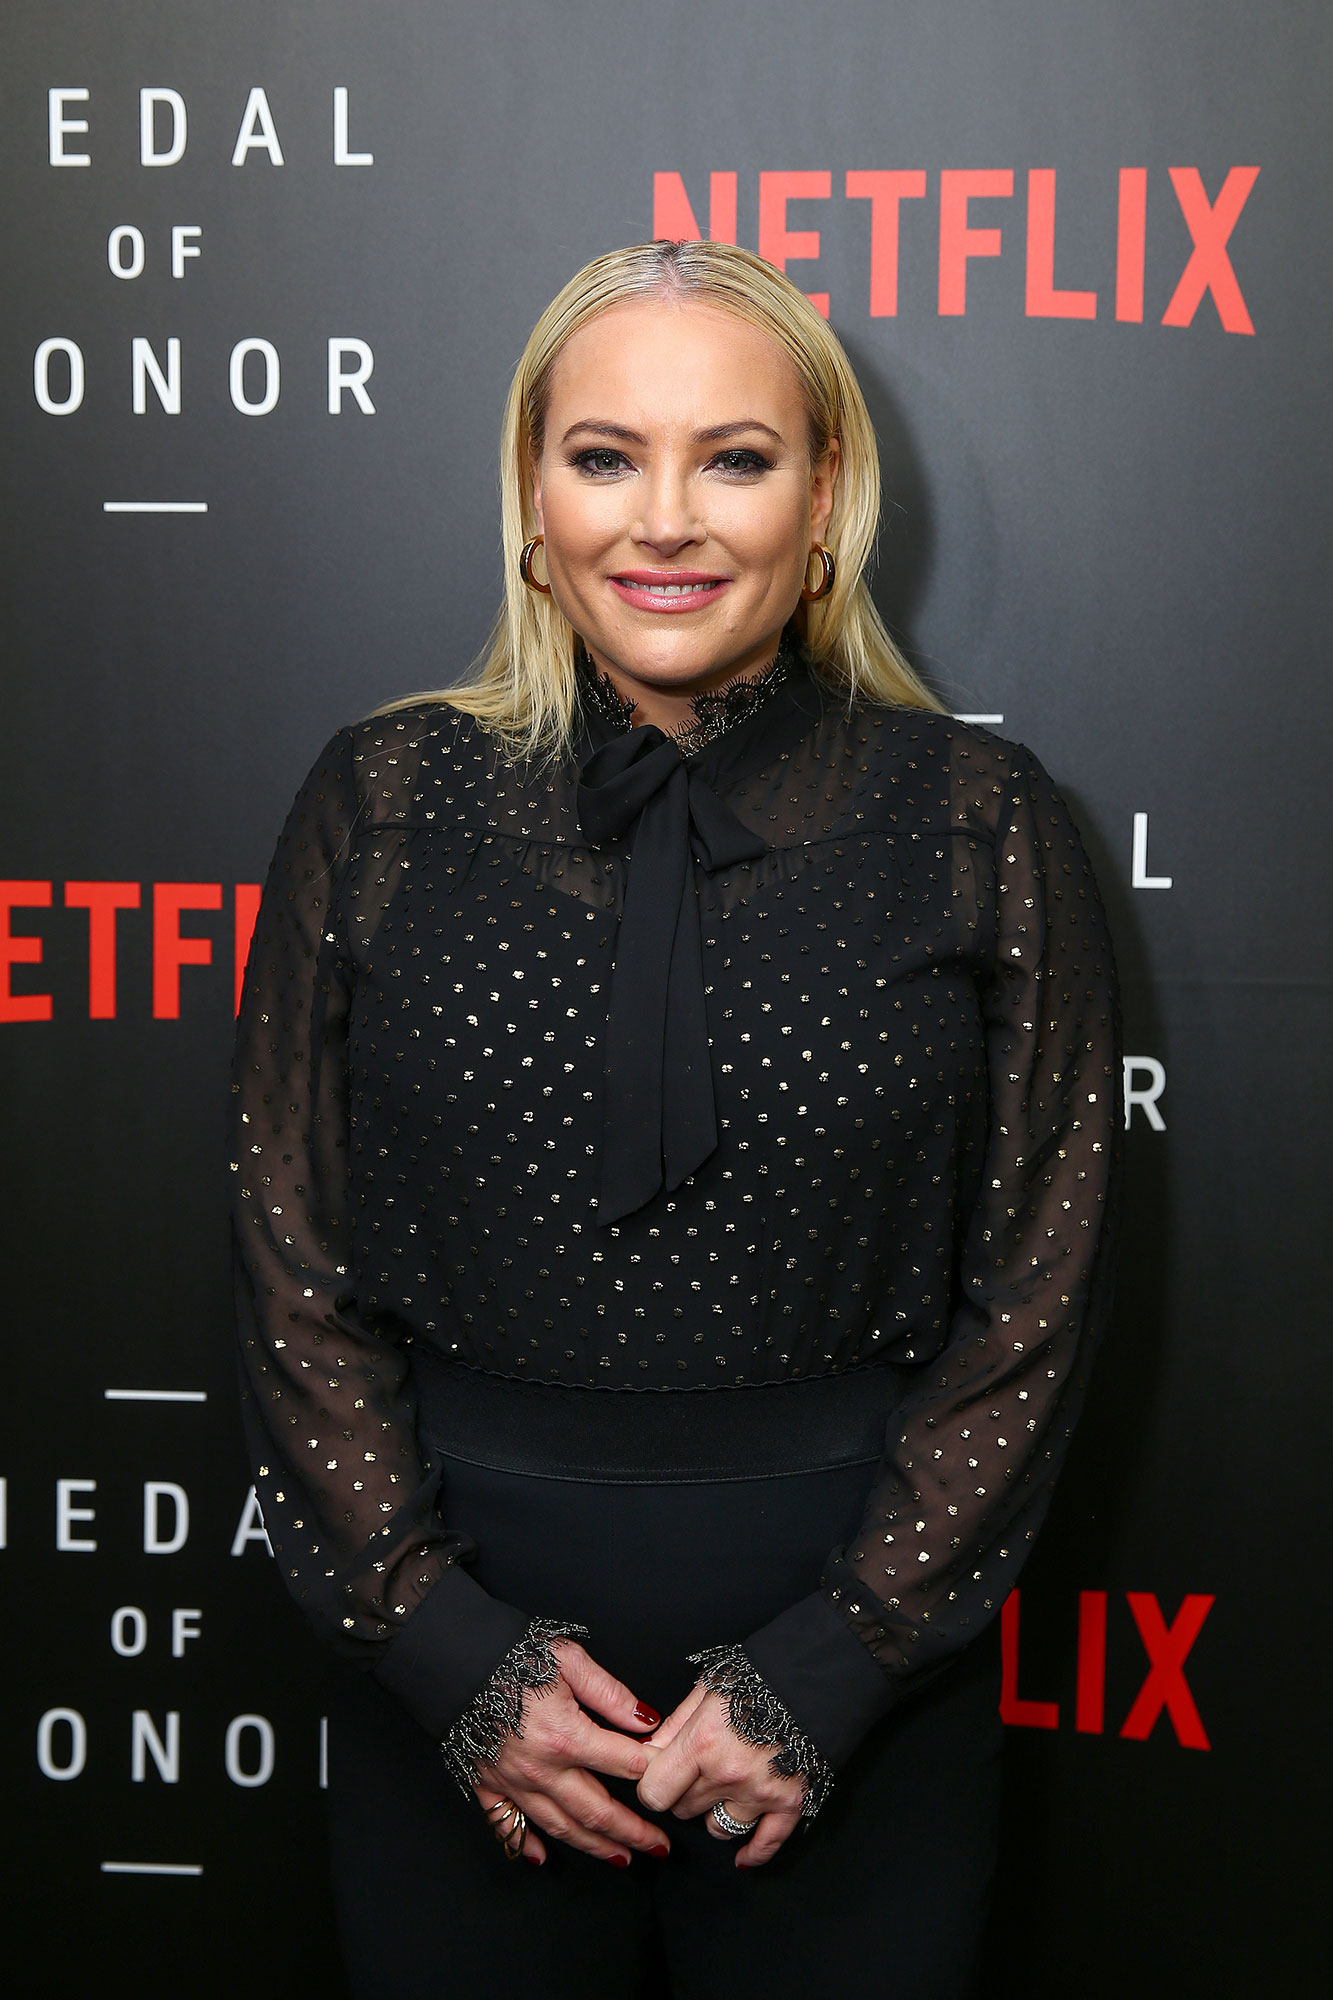 Meghan McCain Slams Denise McAllister Over 'The View' Diss - Meghan McCain, Co-Host of 'The View', at the Netflix 'Medal of Honor' screening and panel discussion at the US Navy Memorial Burke Theater on November 13, 2018 in Washington, DC.